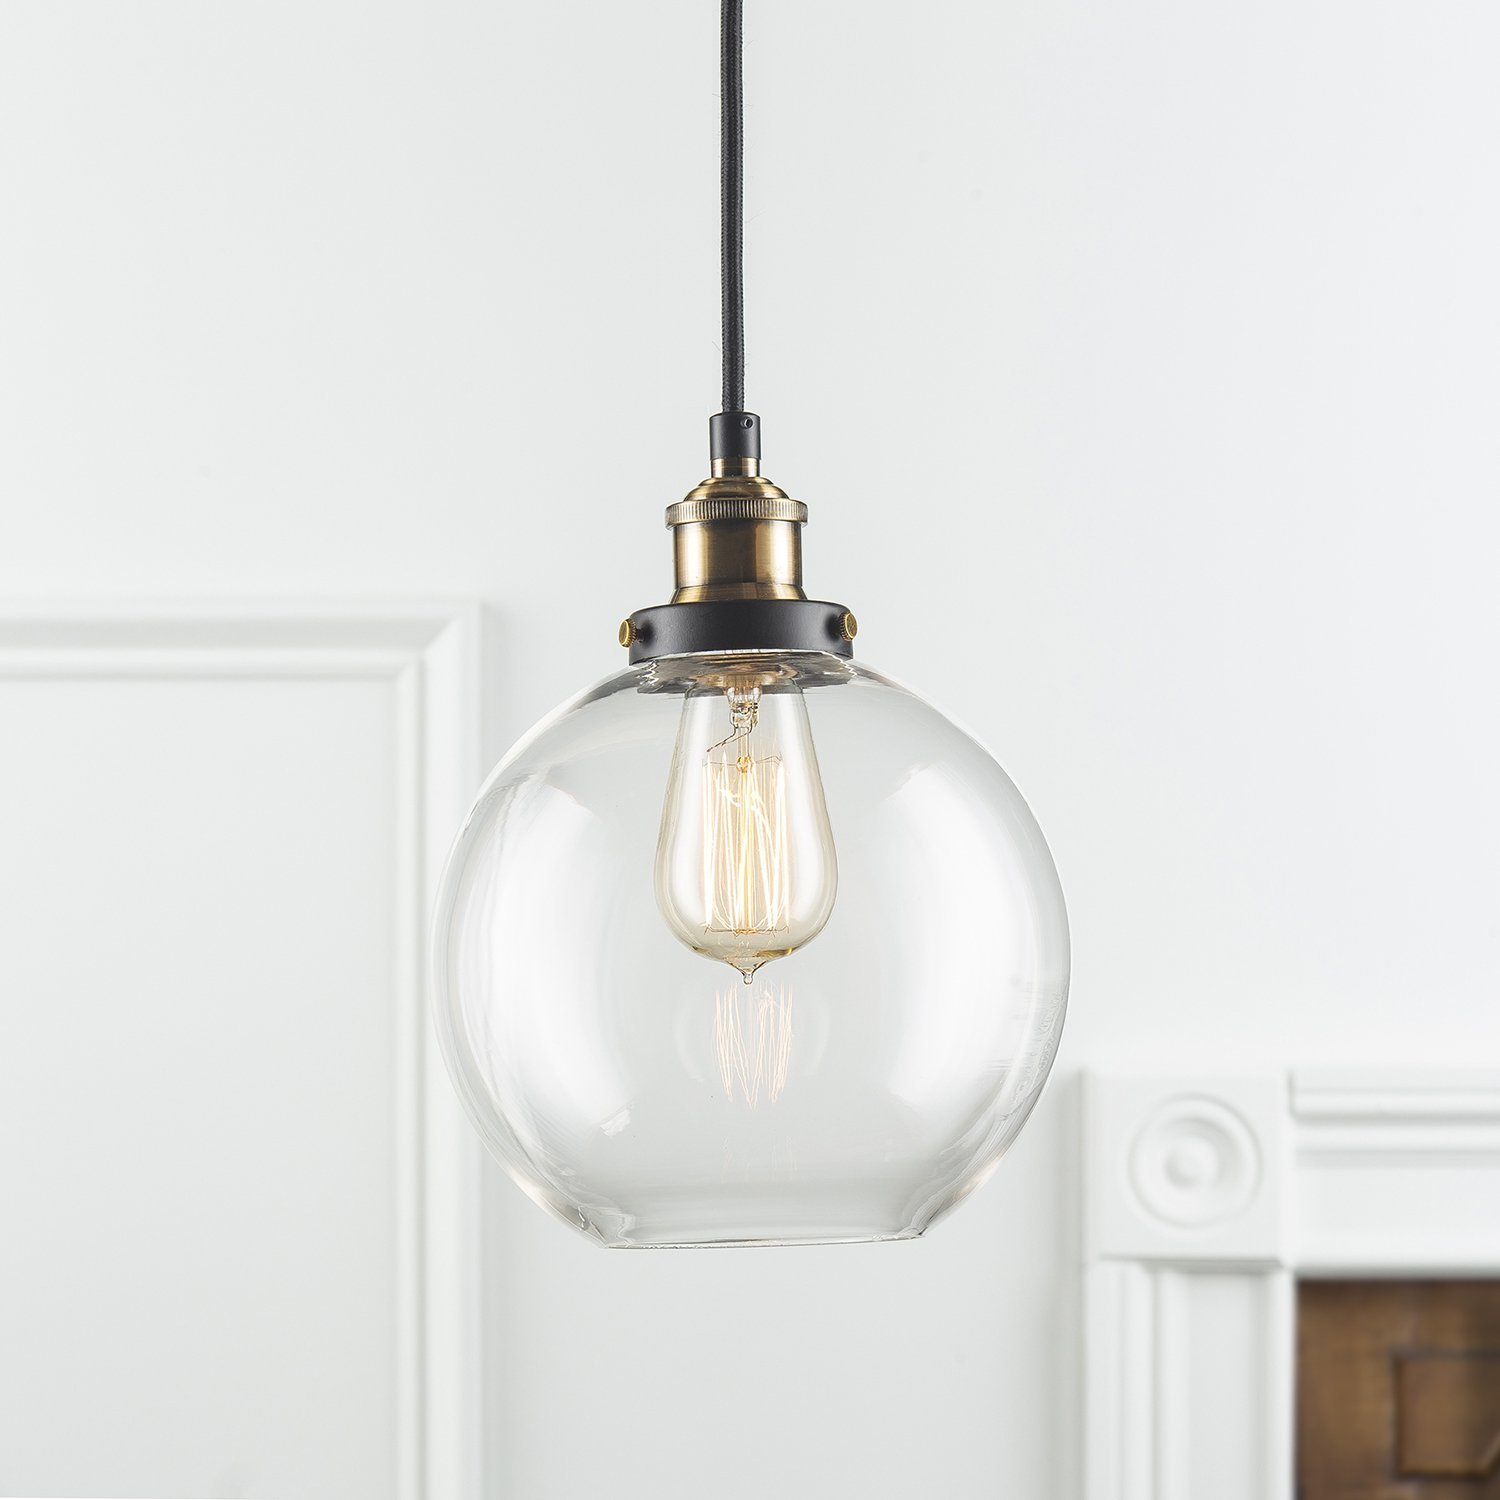 Frideko Vintage Pendant Light Retro Industrial Ball Glass Light Fitting for Hom